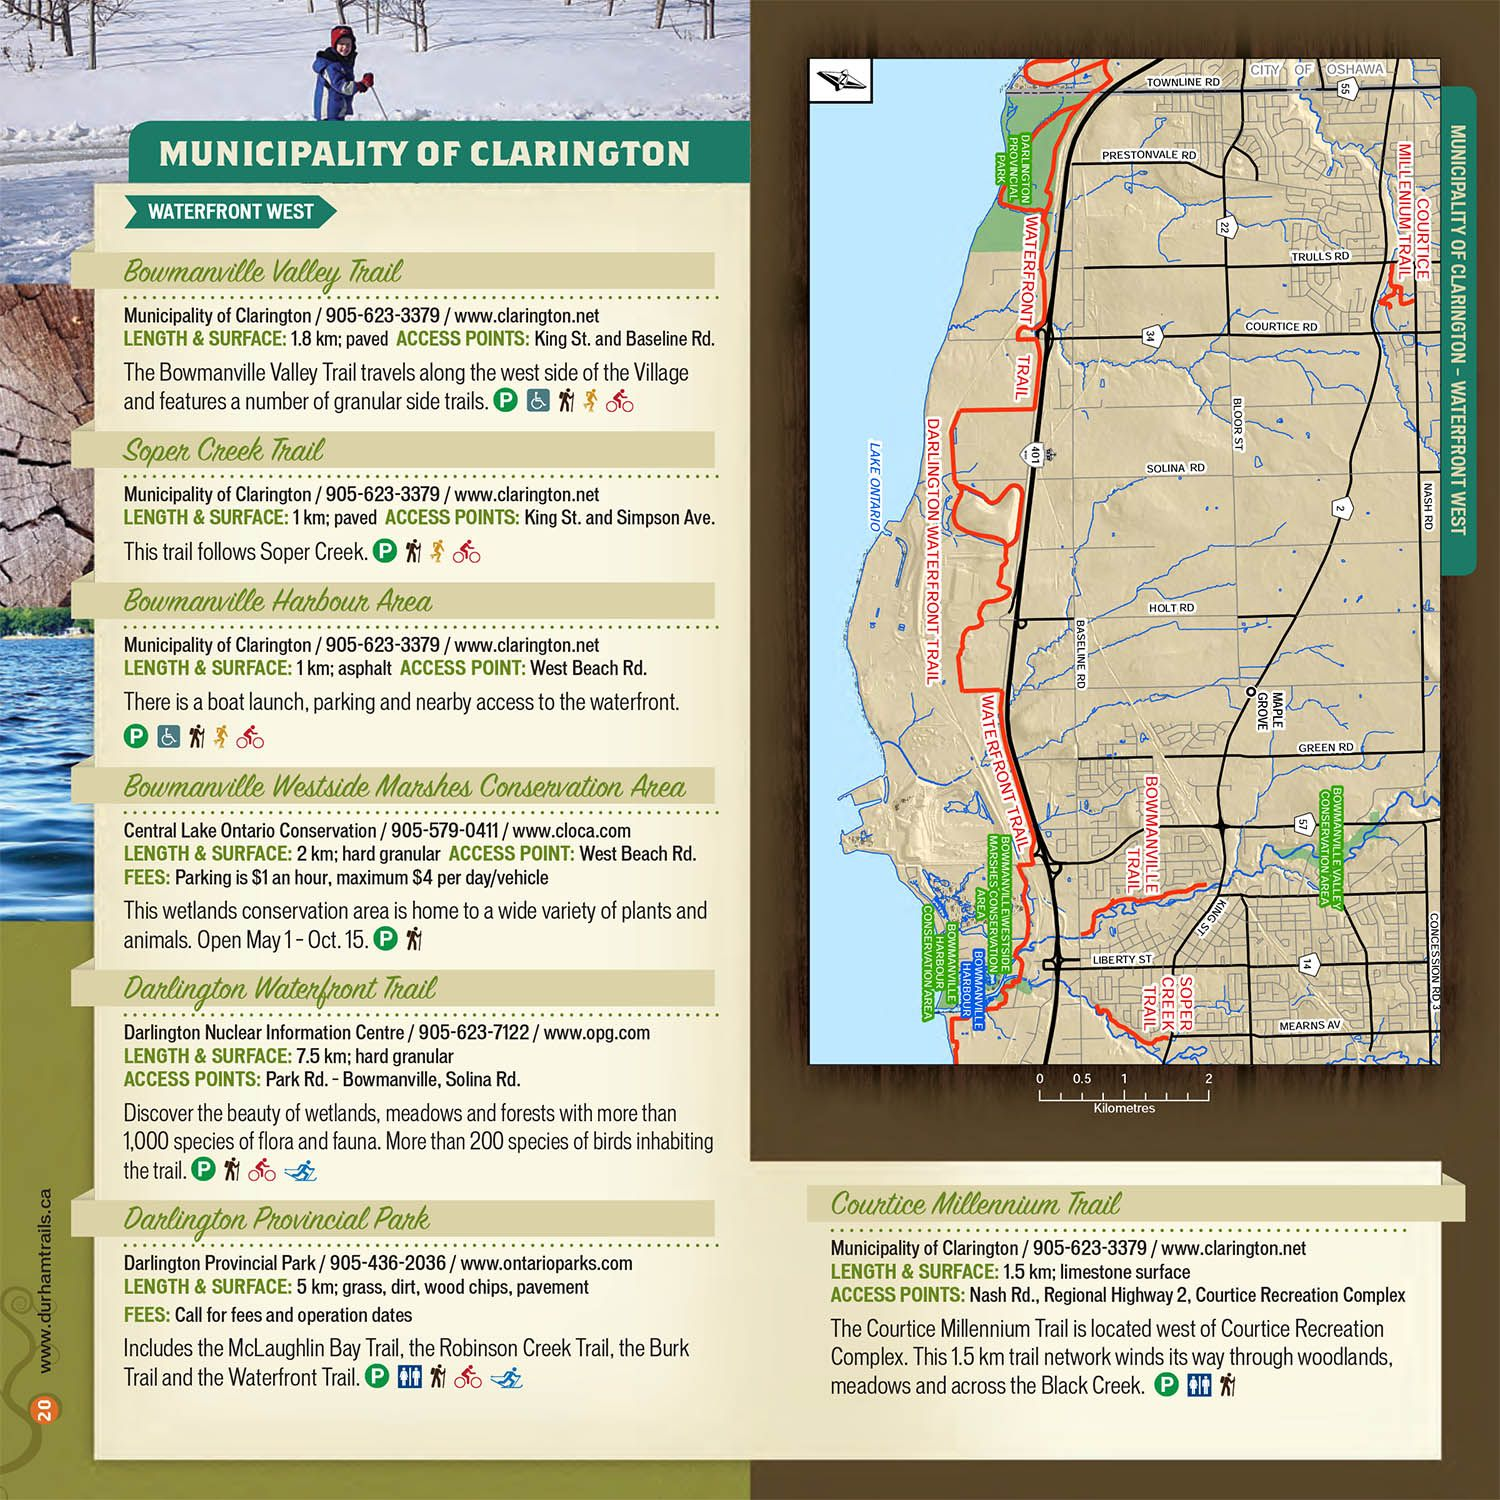 Municipality of Clarington Waterfront West Guide